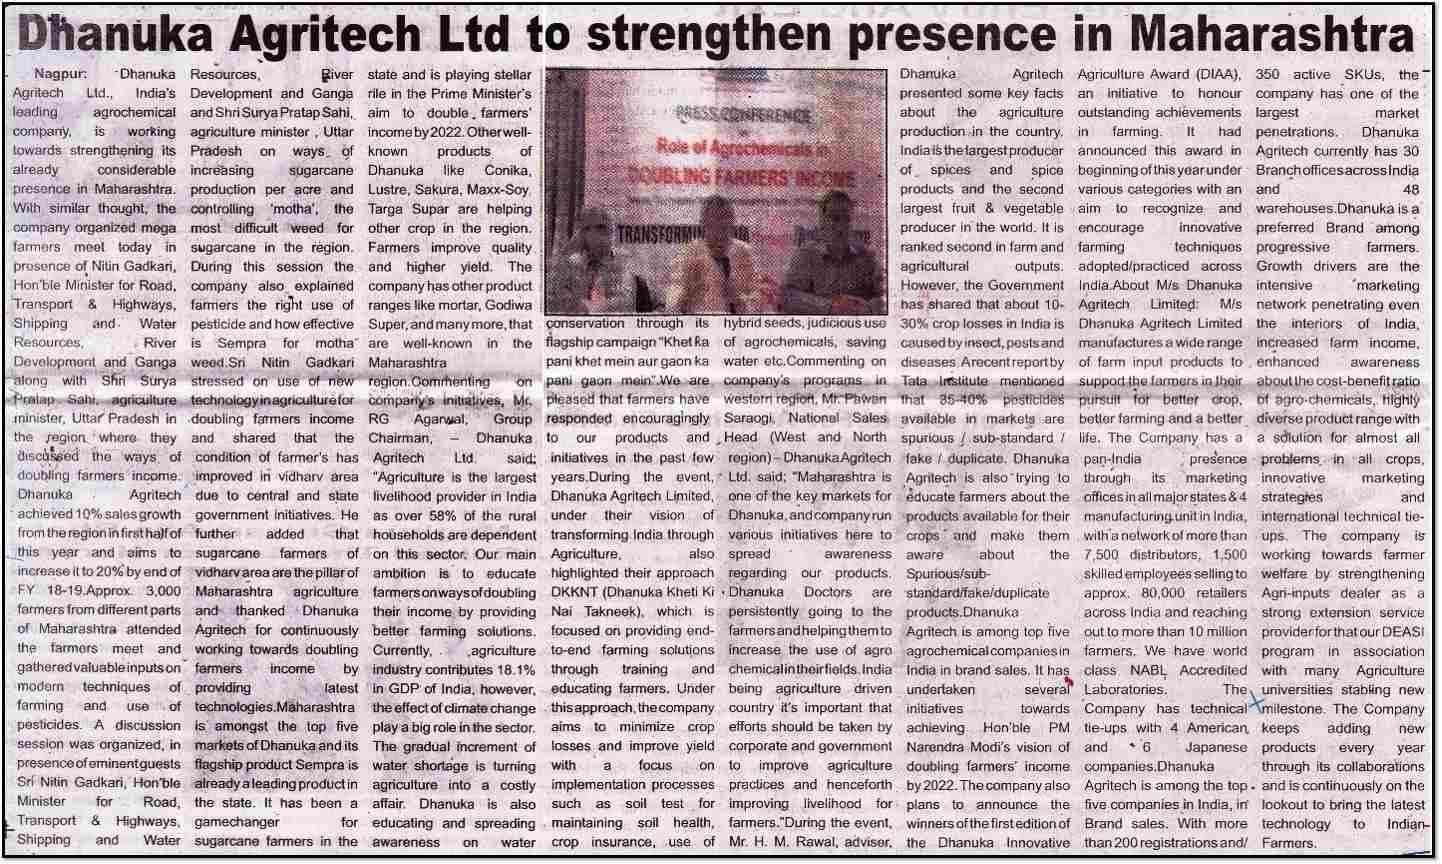 2018 Nagpur Post - Dhanuka Agritech to strengthen it's presence in Maharashtra